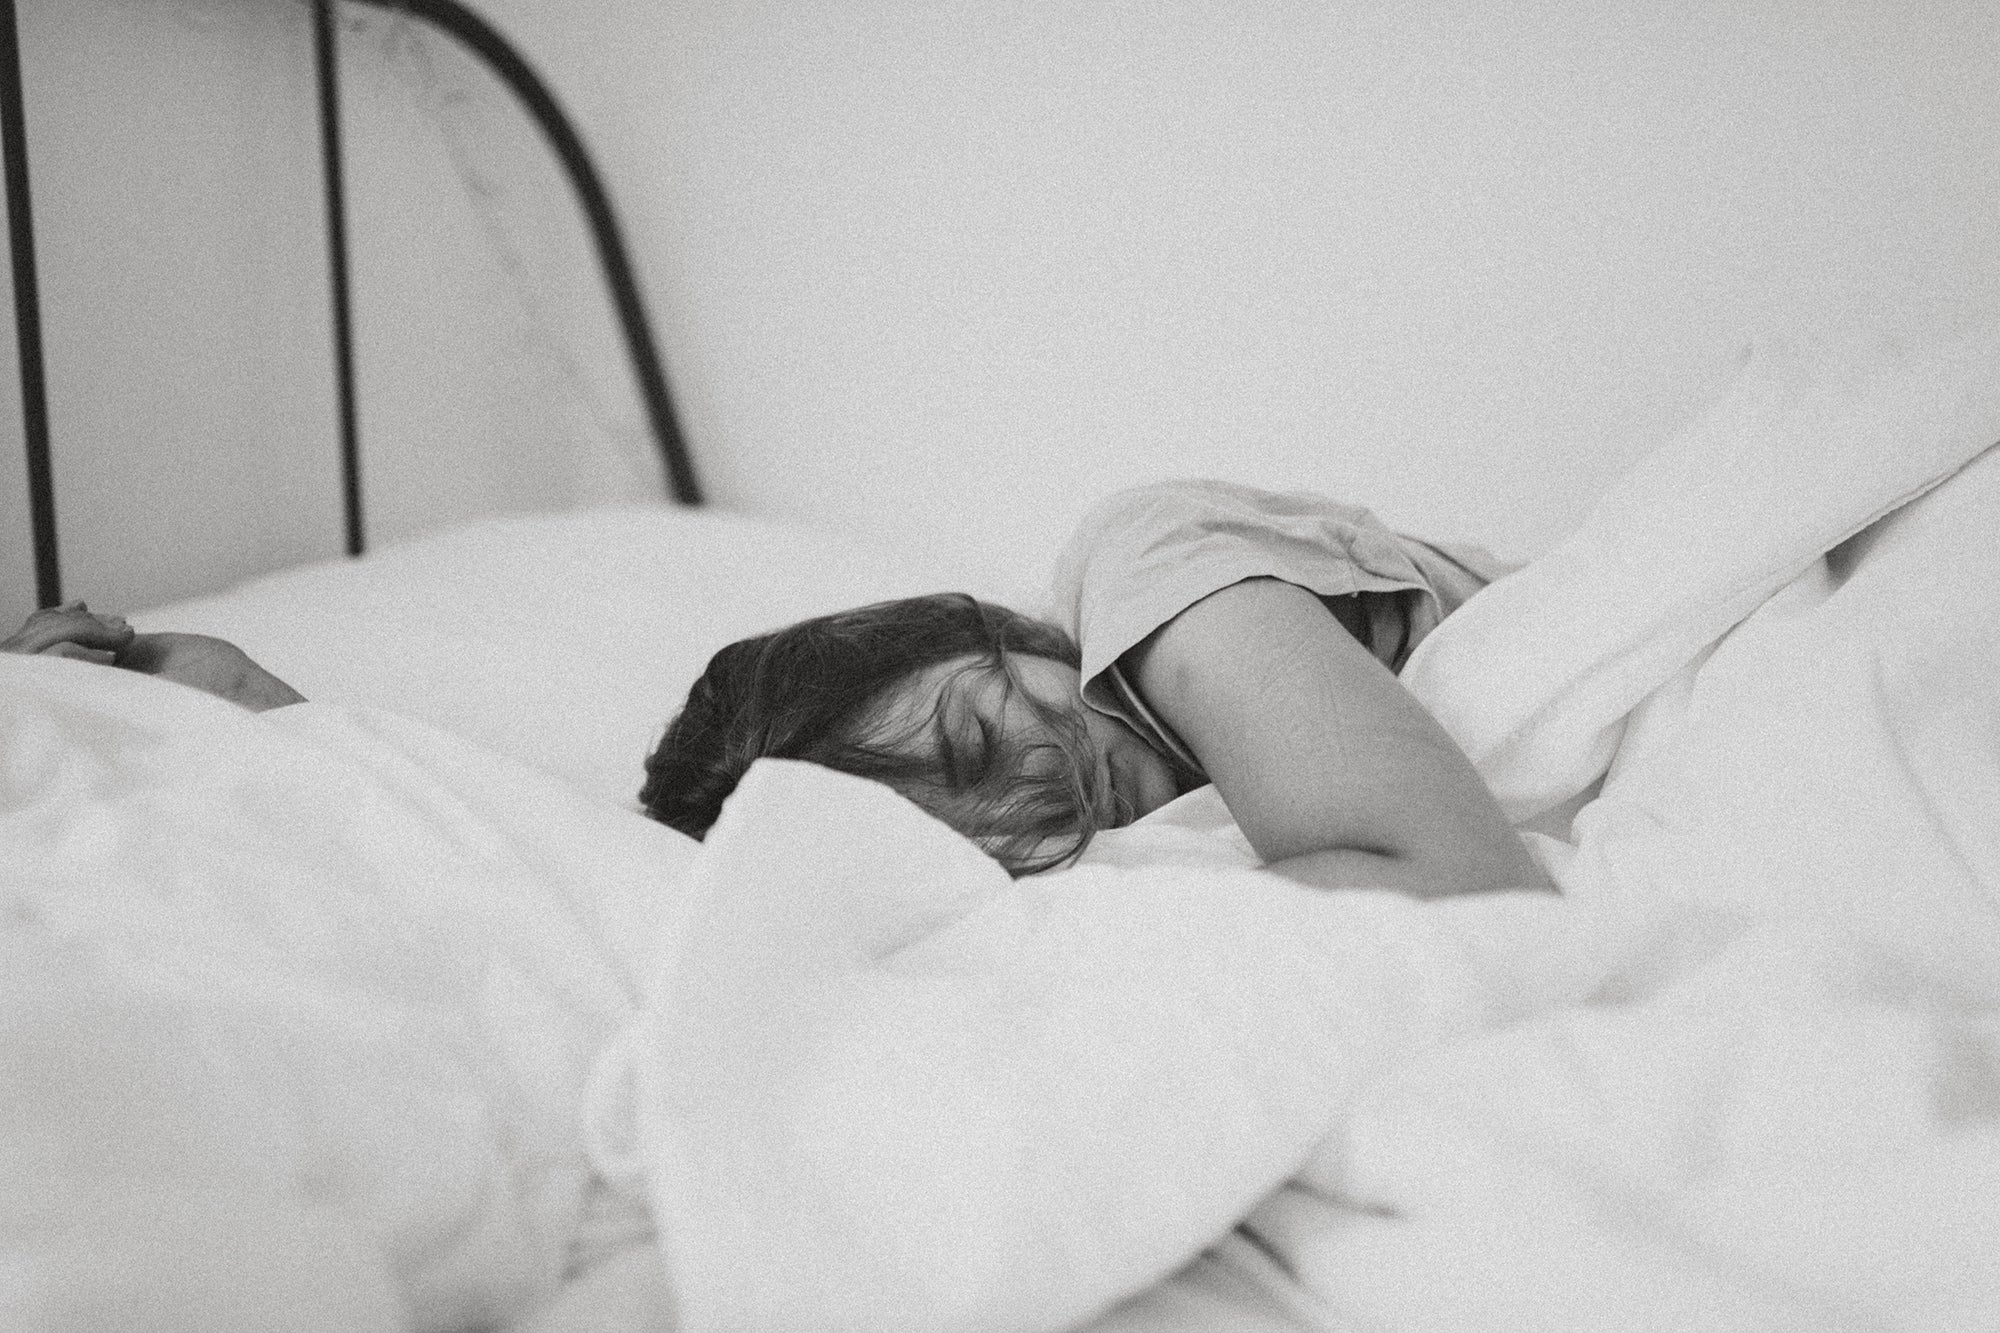 A woman sleeping in bed under a blanket and the best bed sheets.